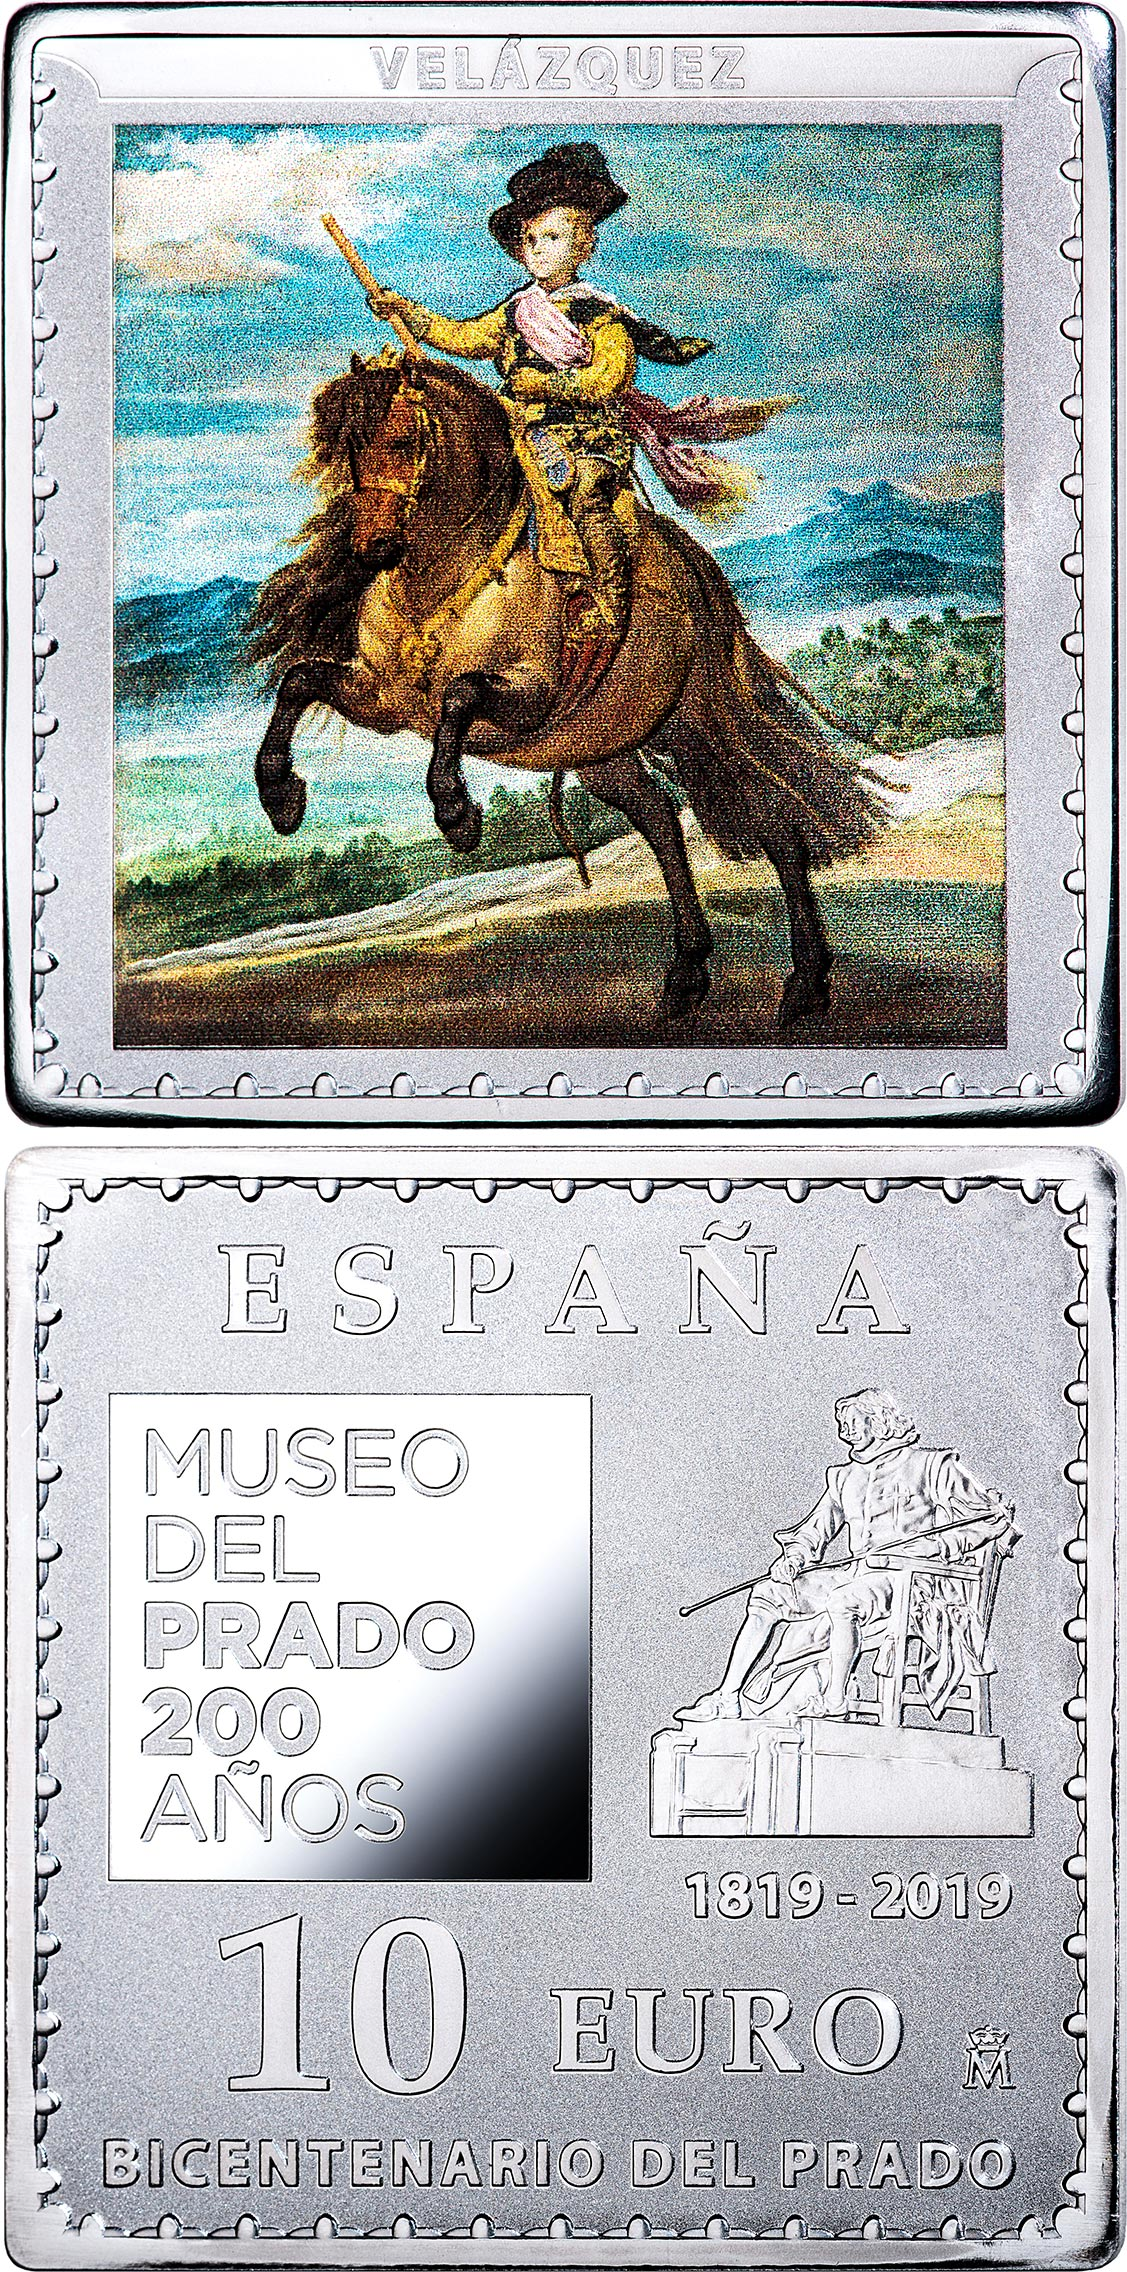 Image of 10 euro coin - Bicentenary of the Museum del Prado - Prince Baltasar Carlos, on horseback | Spain 2019.  The Silver coin is of Proof quality.